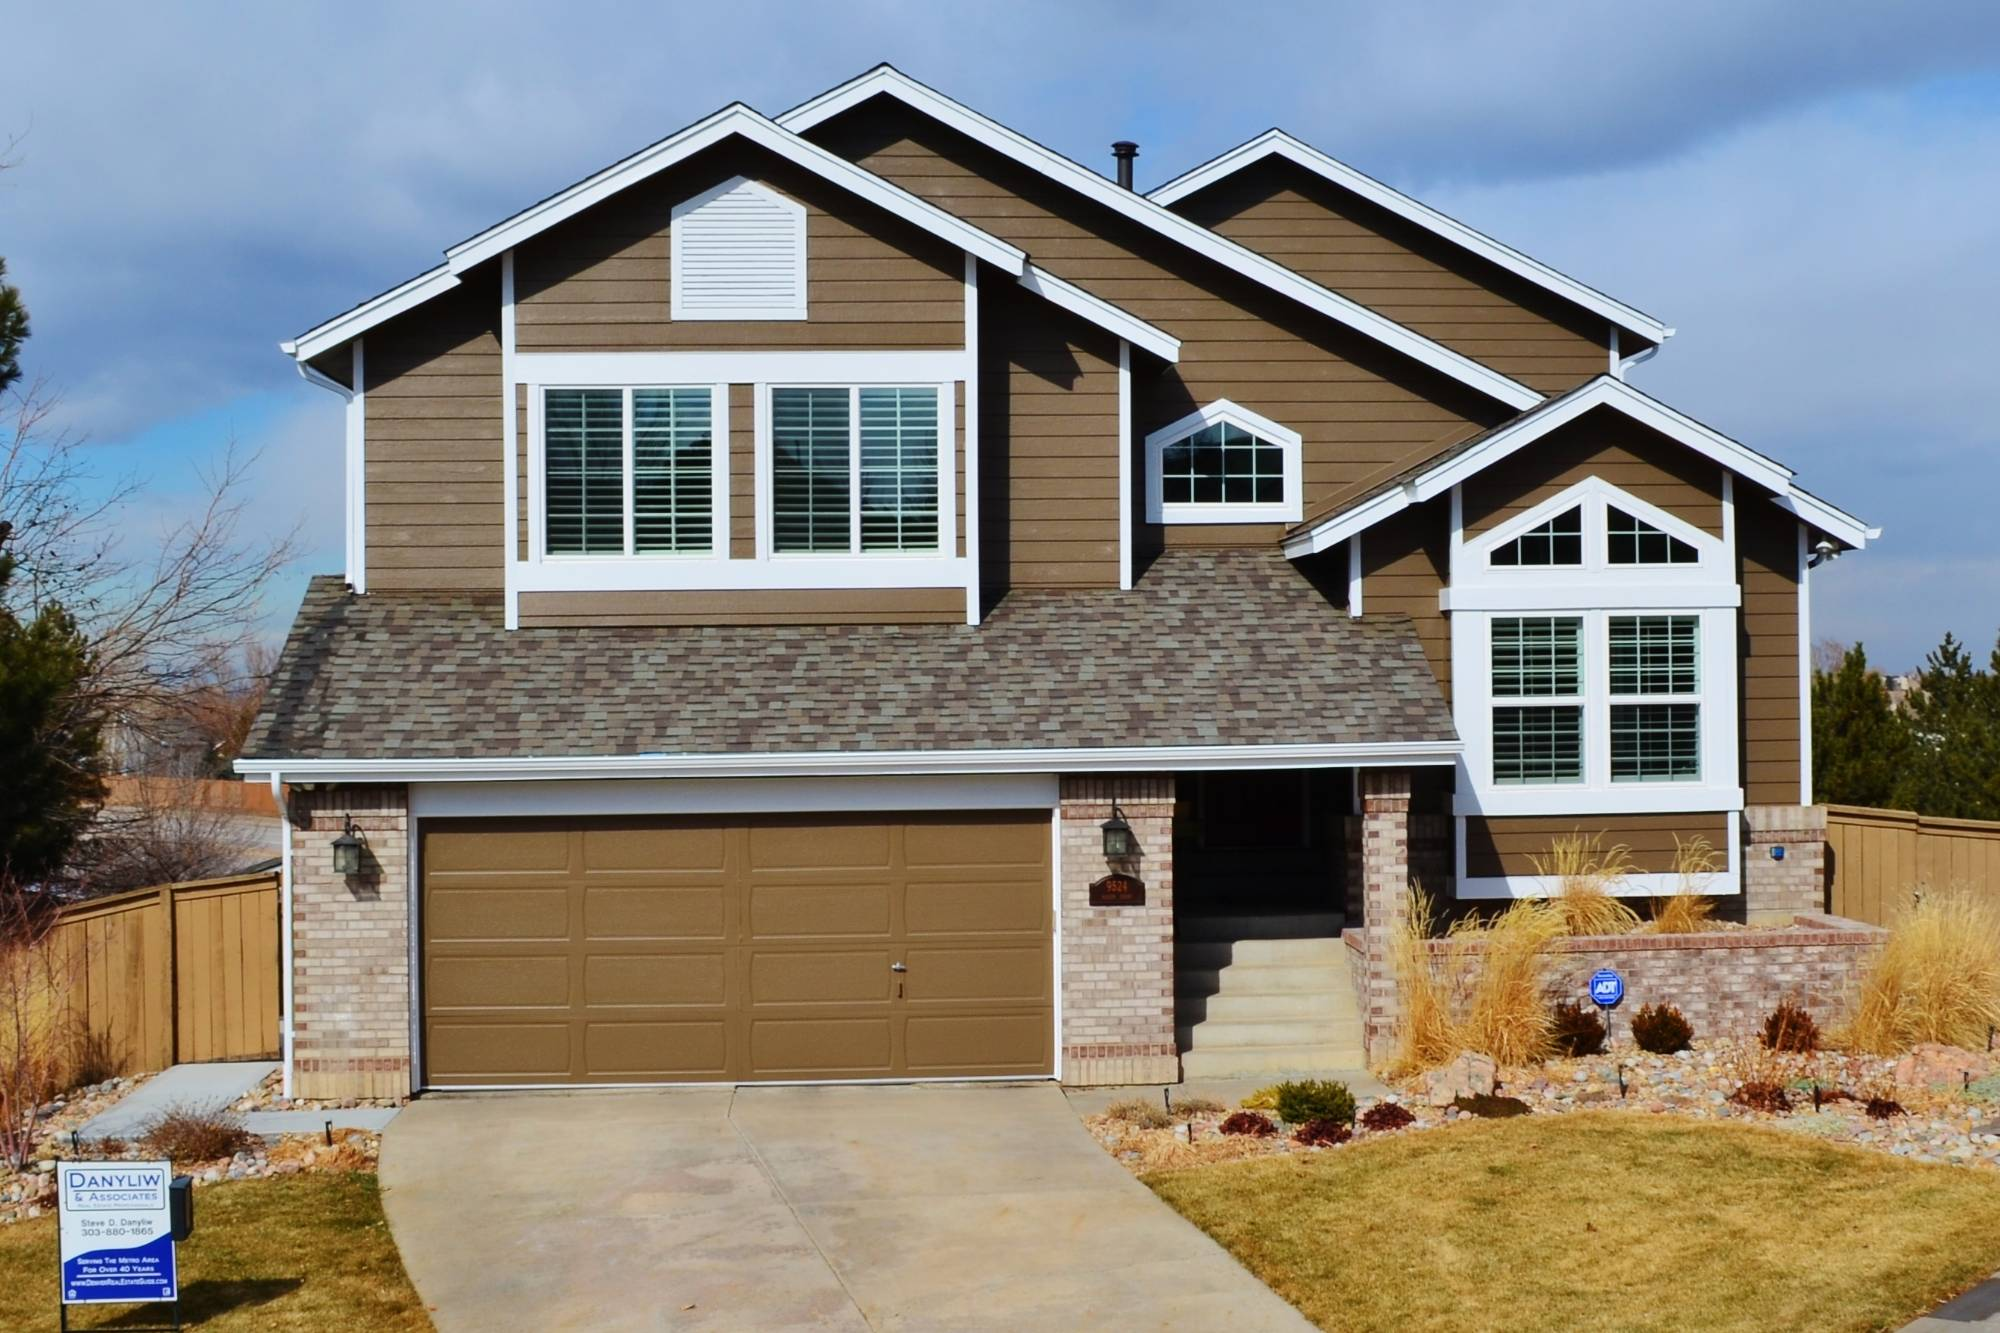 Exterior Photo of a house in Highlands Ranch